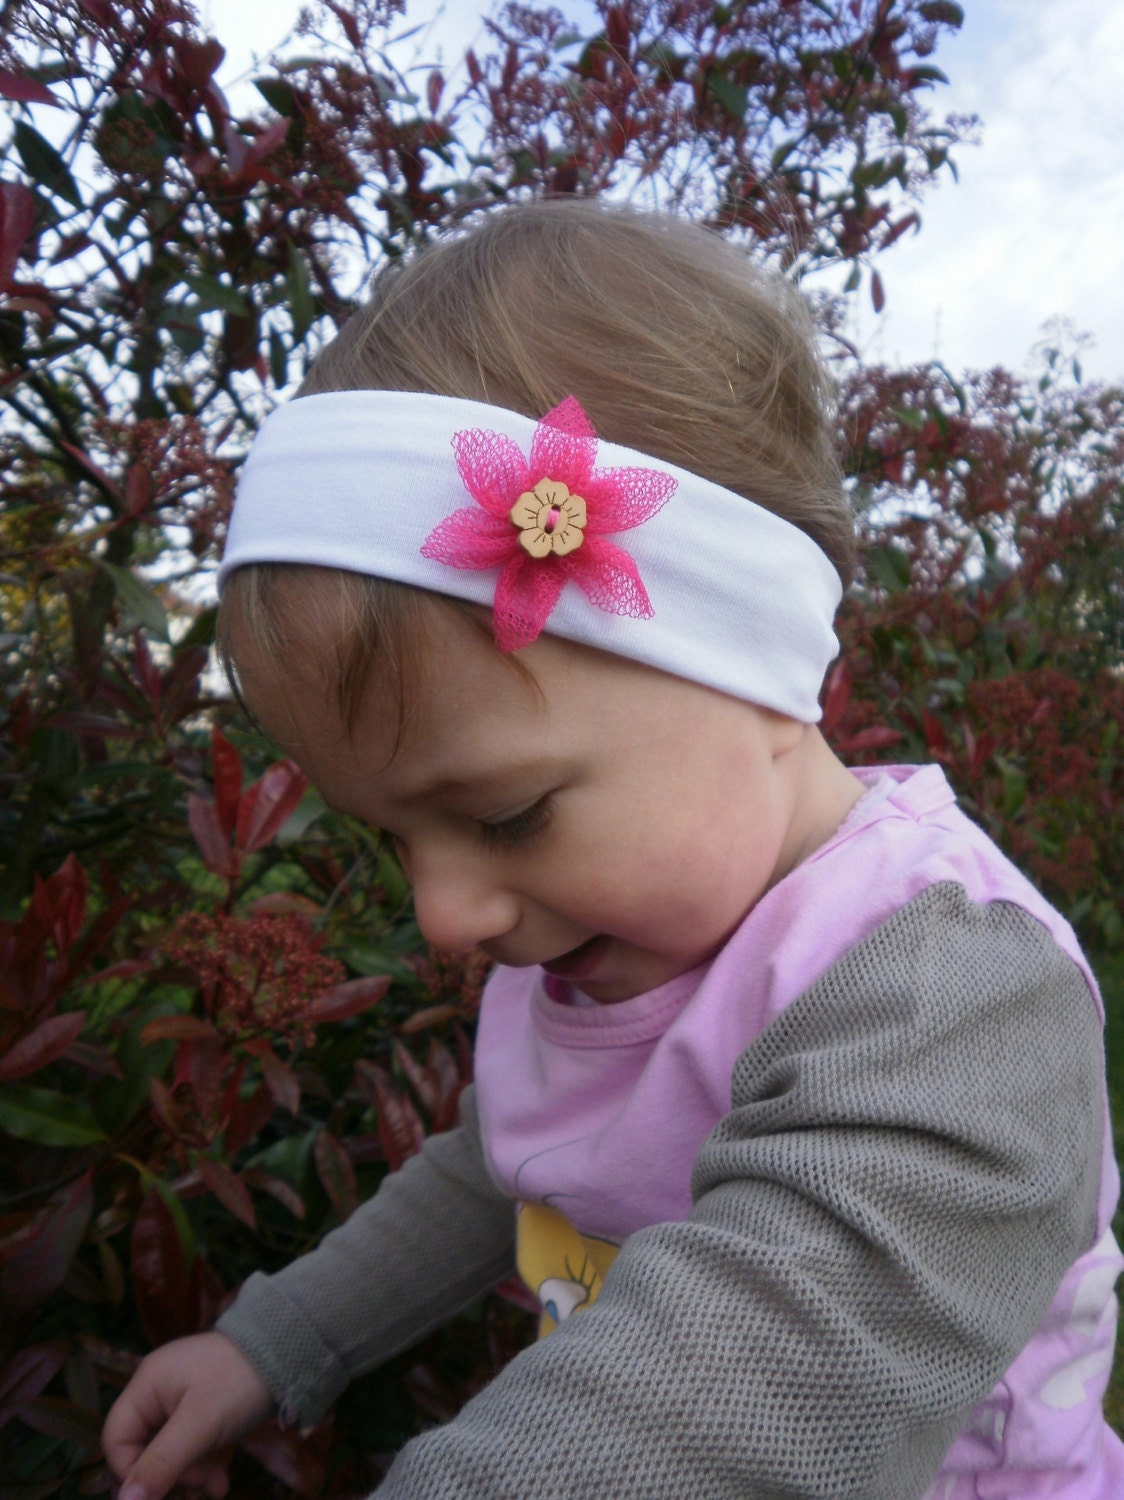 bandeau b b fleur fille enfant fillette large headband petite. Black Bedroom Furniture Sets. Home Design Ideas